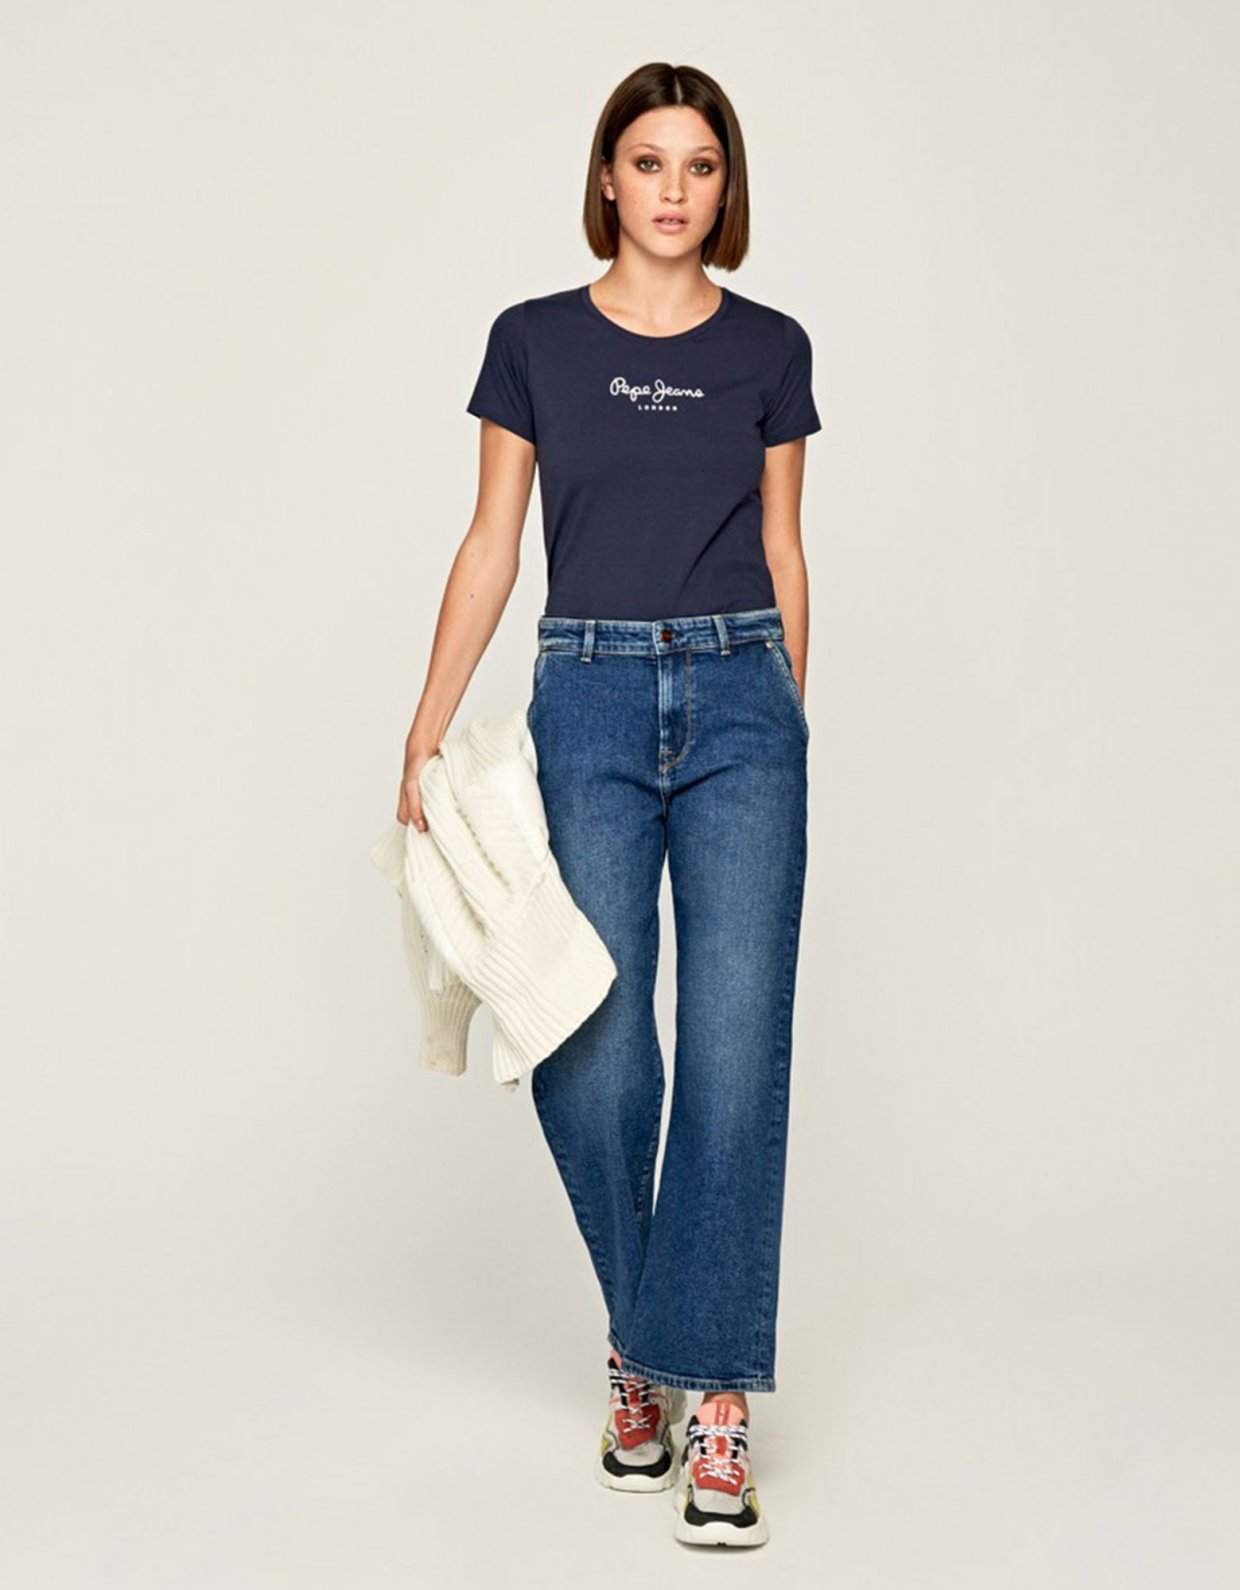 PEPE JEANS New Virginia t-shirt blue